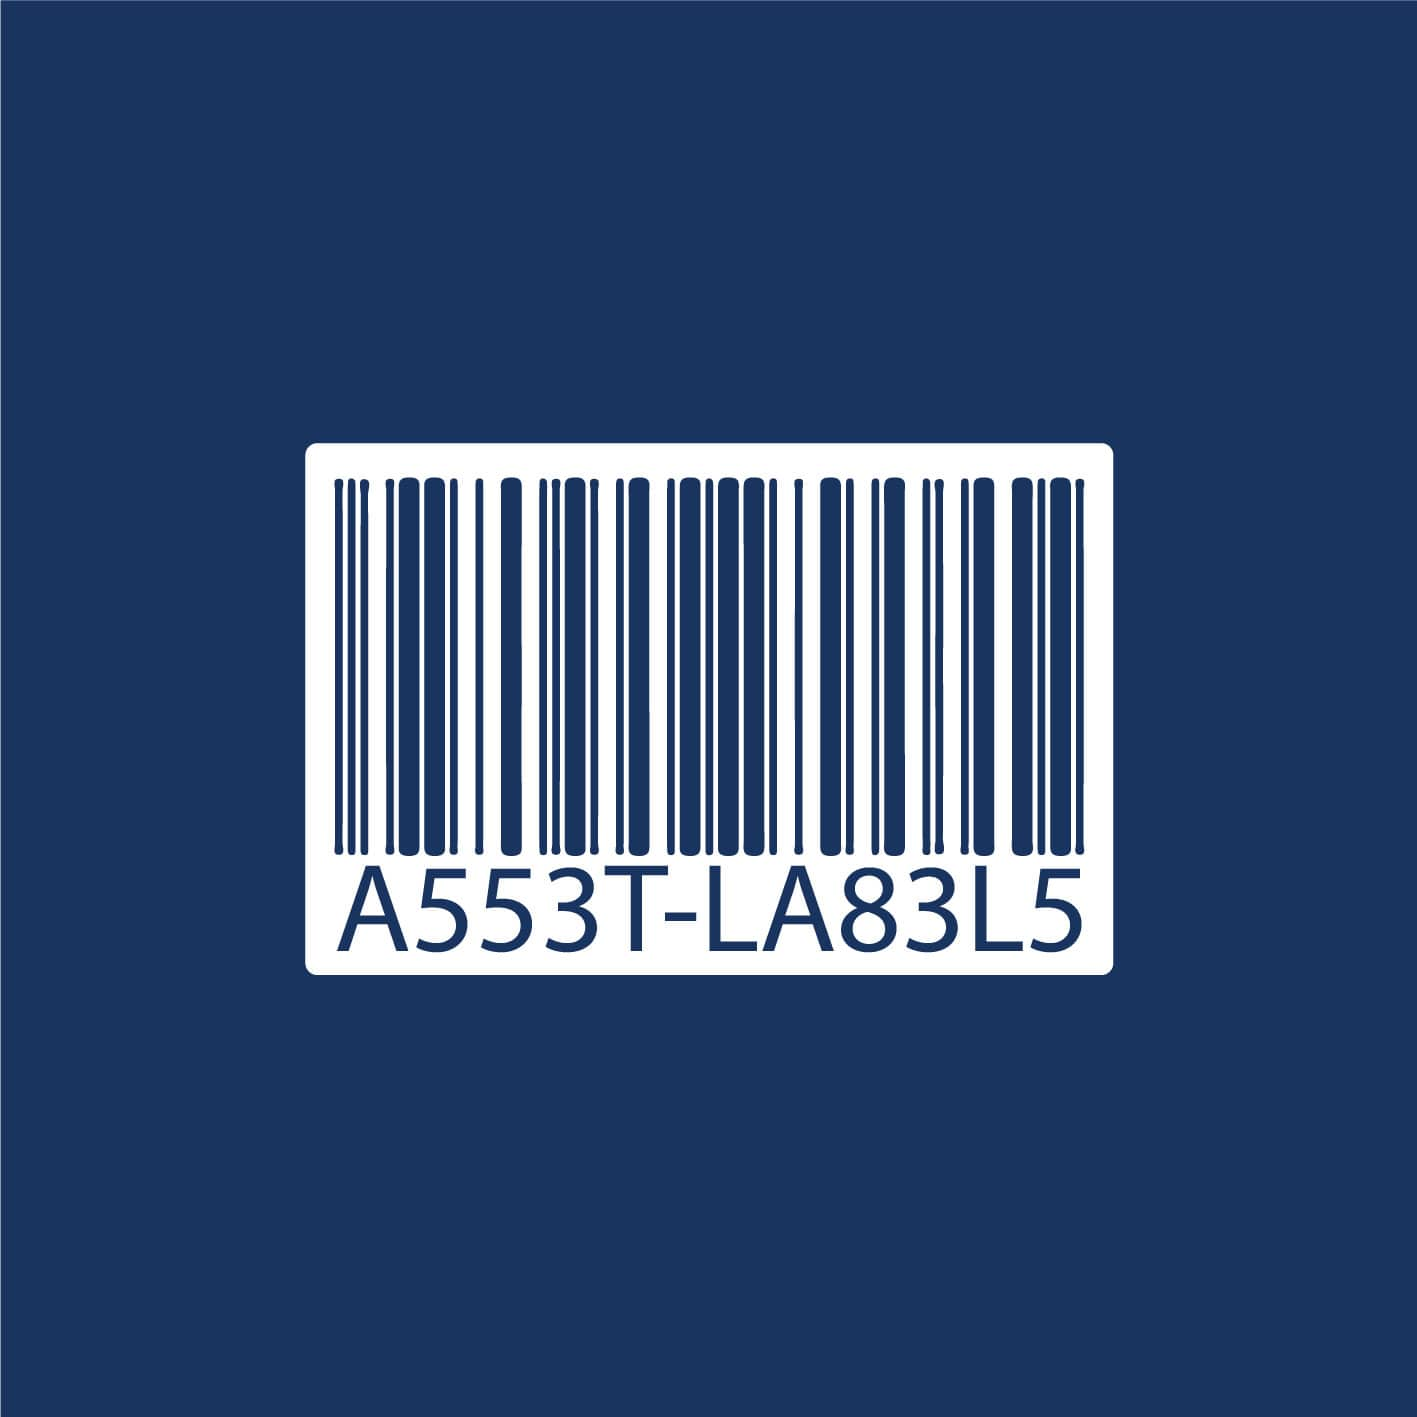 Words asset label on a barcode